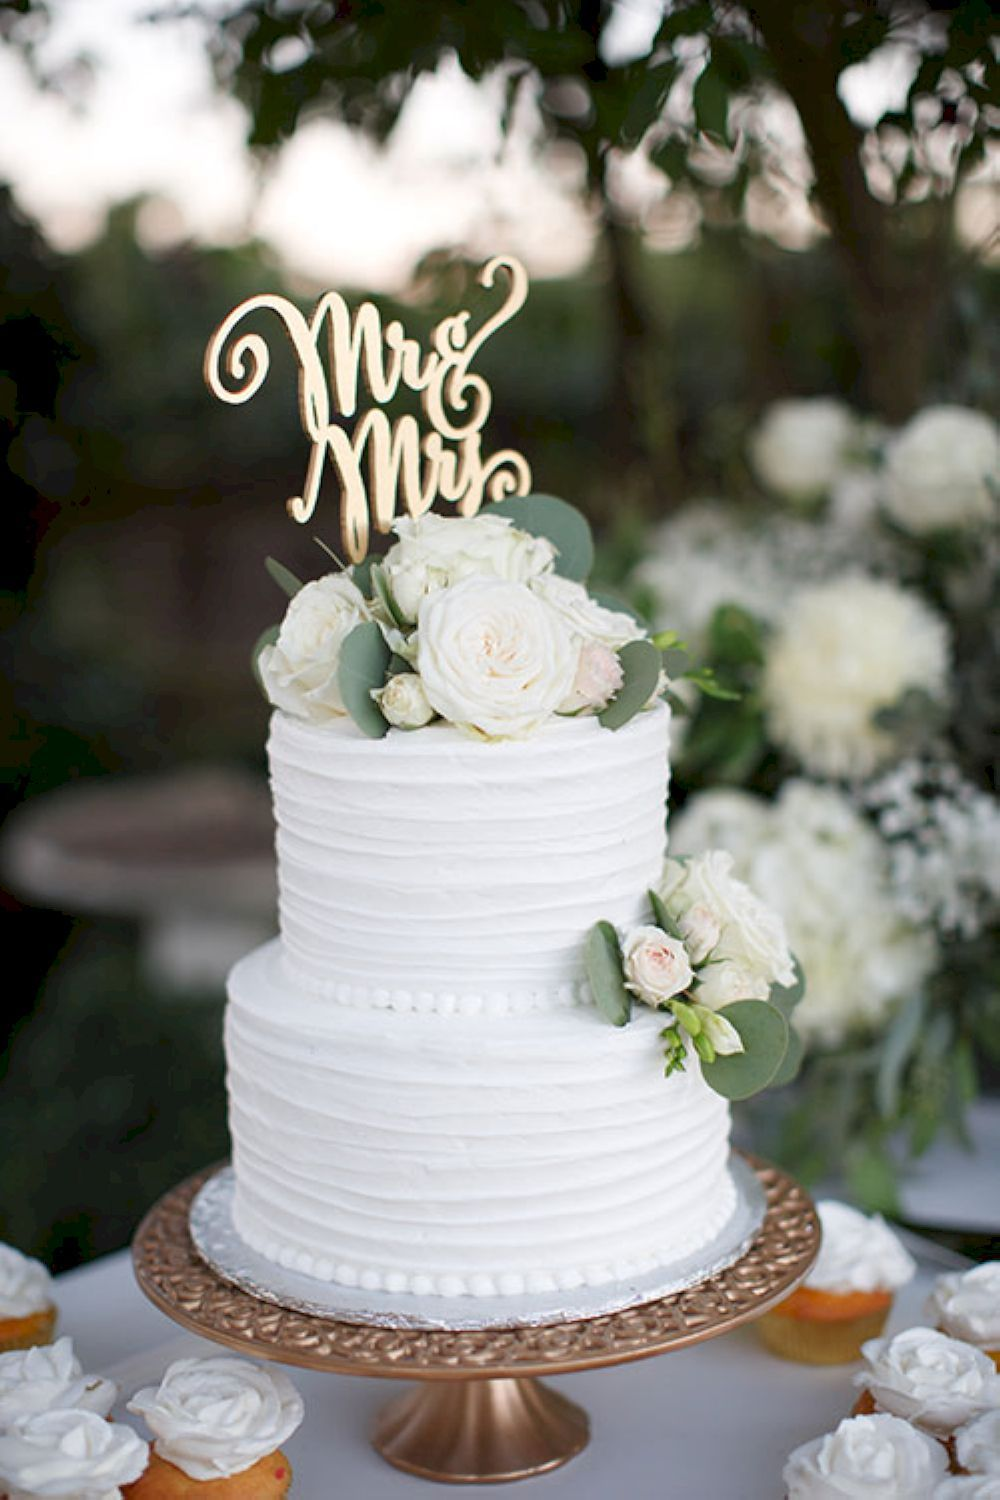 How Big A Wedding Cake For 200 Guests Most wedding cakes for ...